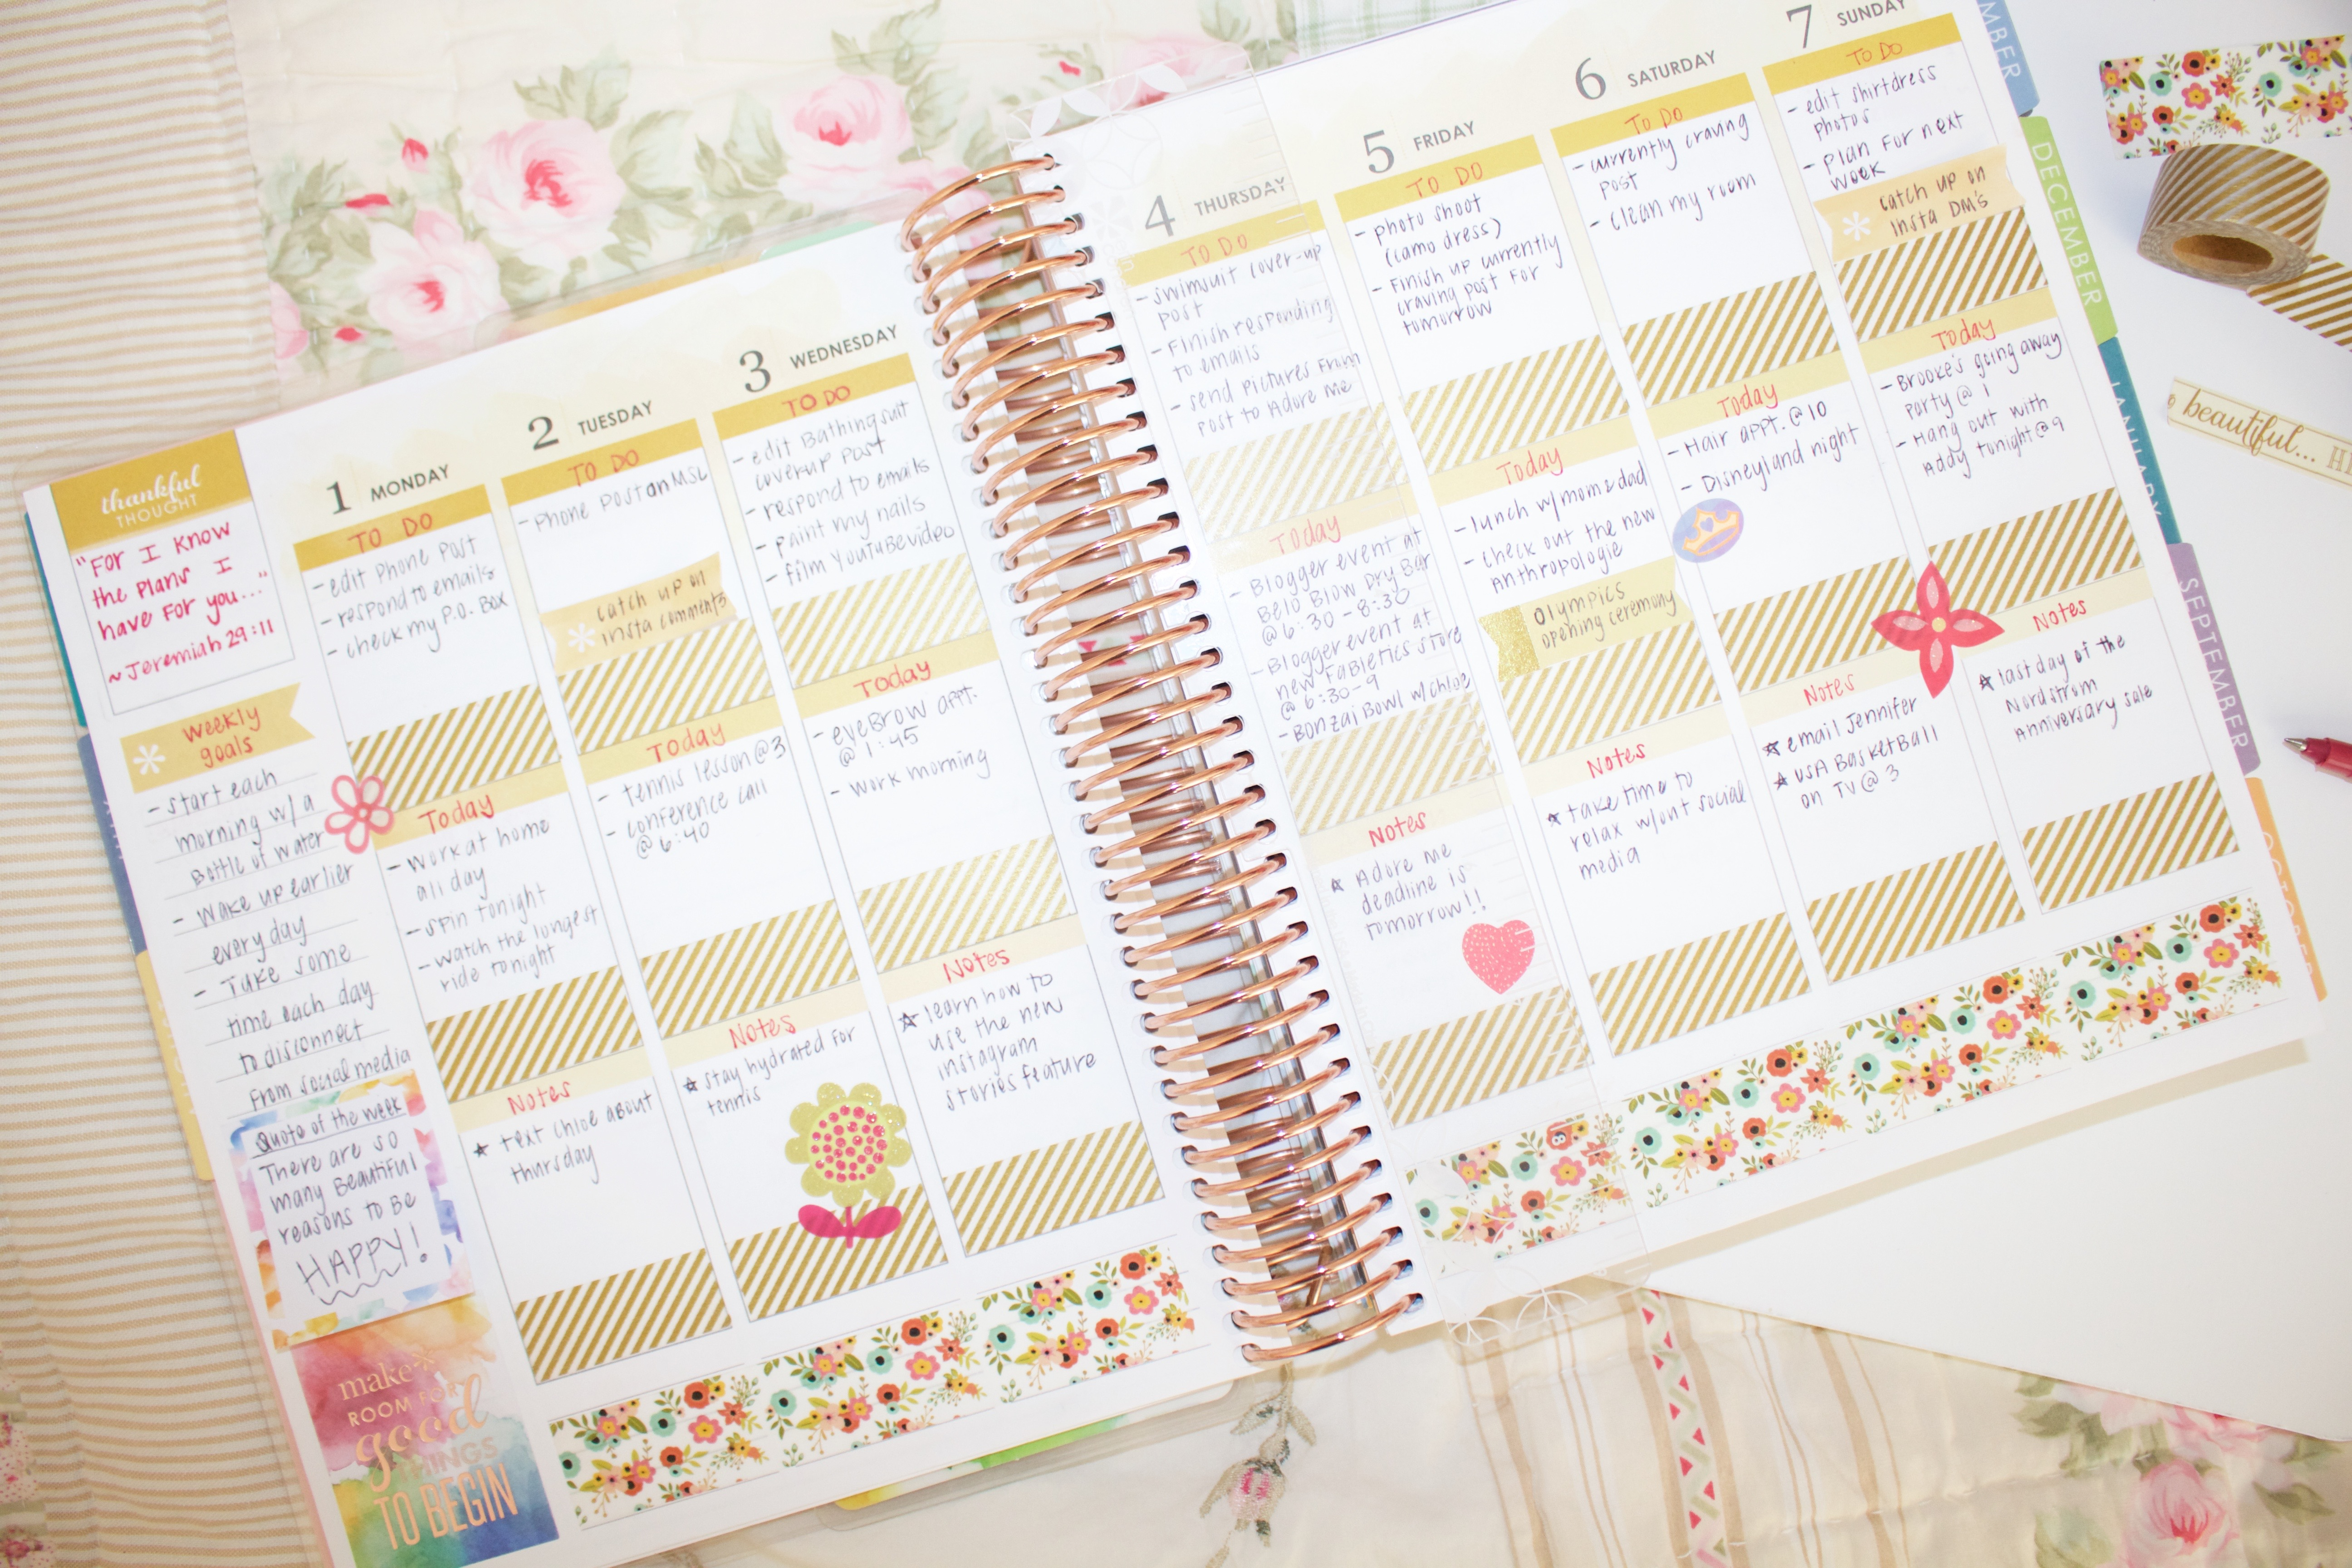 How I Organize my Erin Condren 2017 LifePlanner - My Styled Life